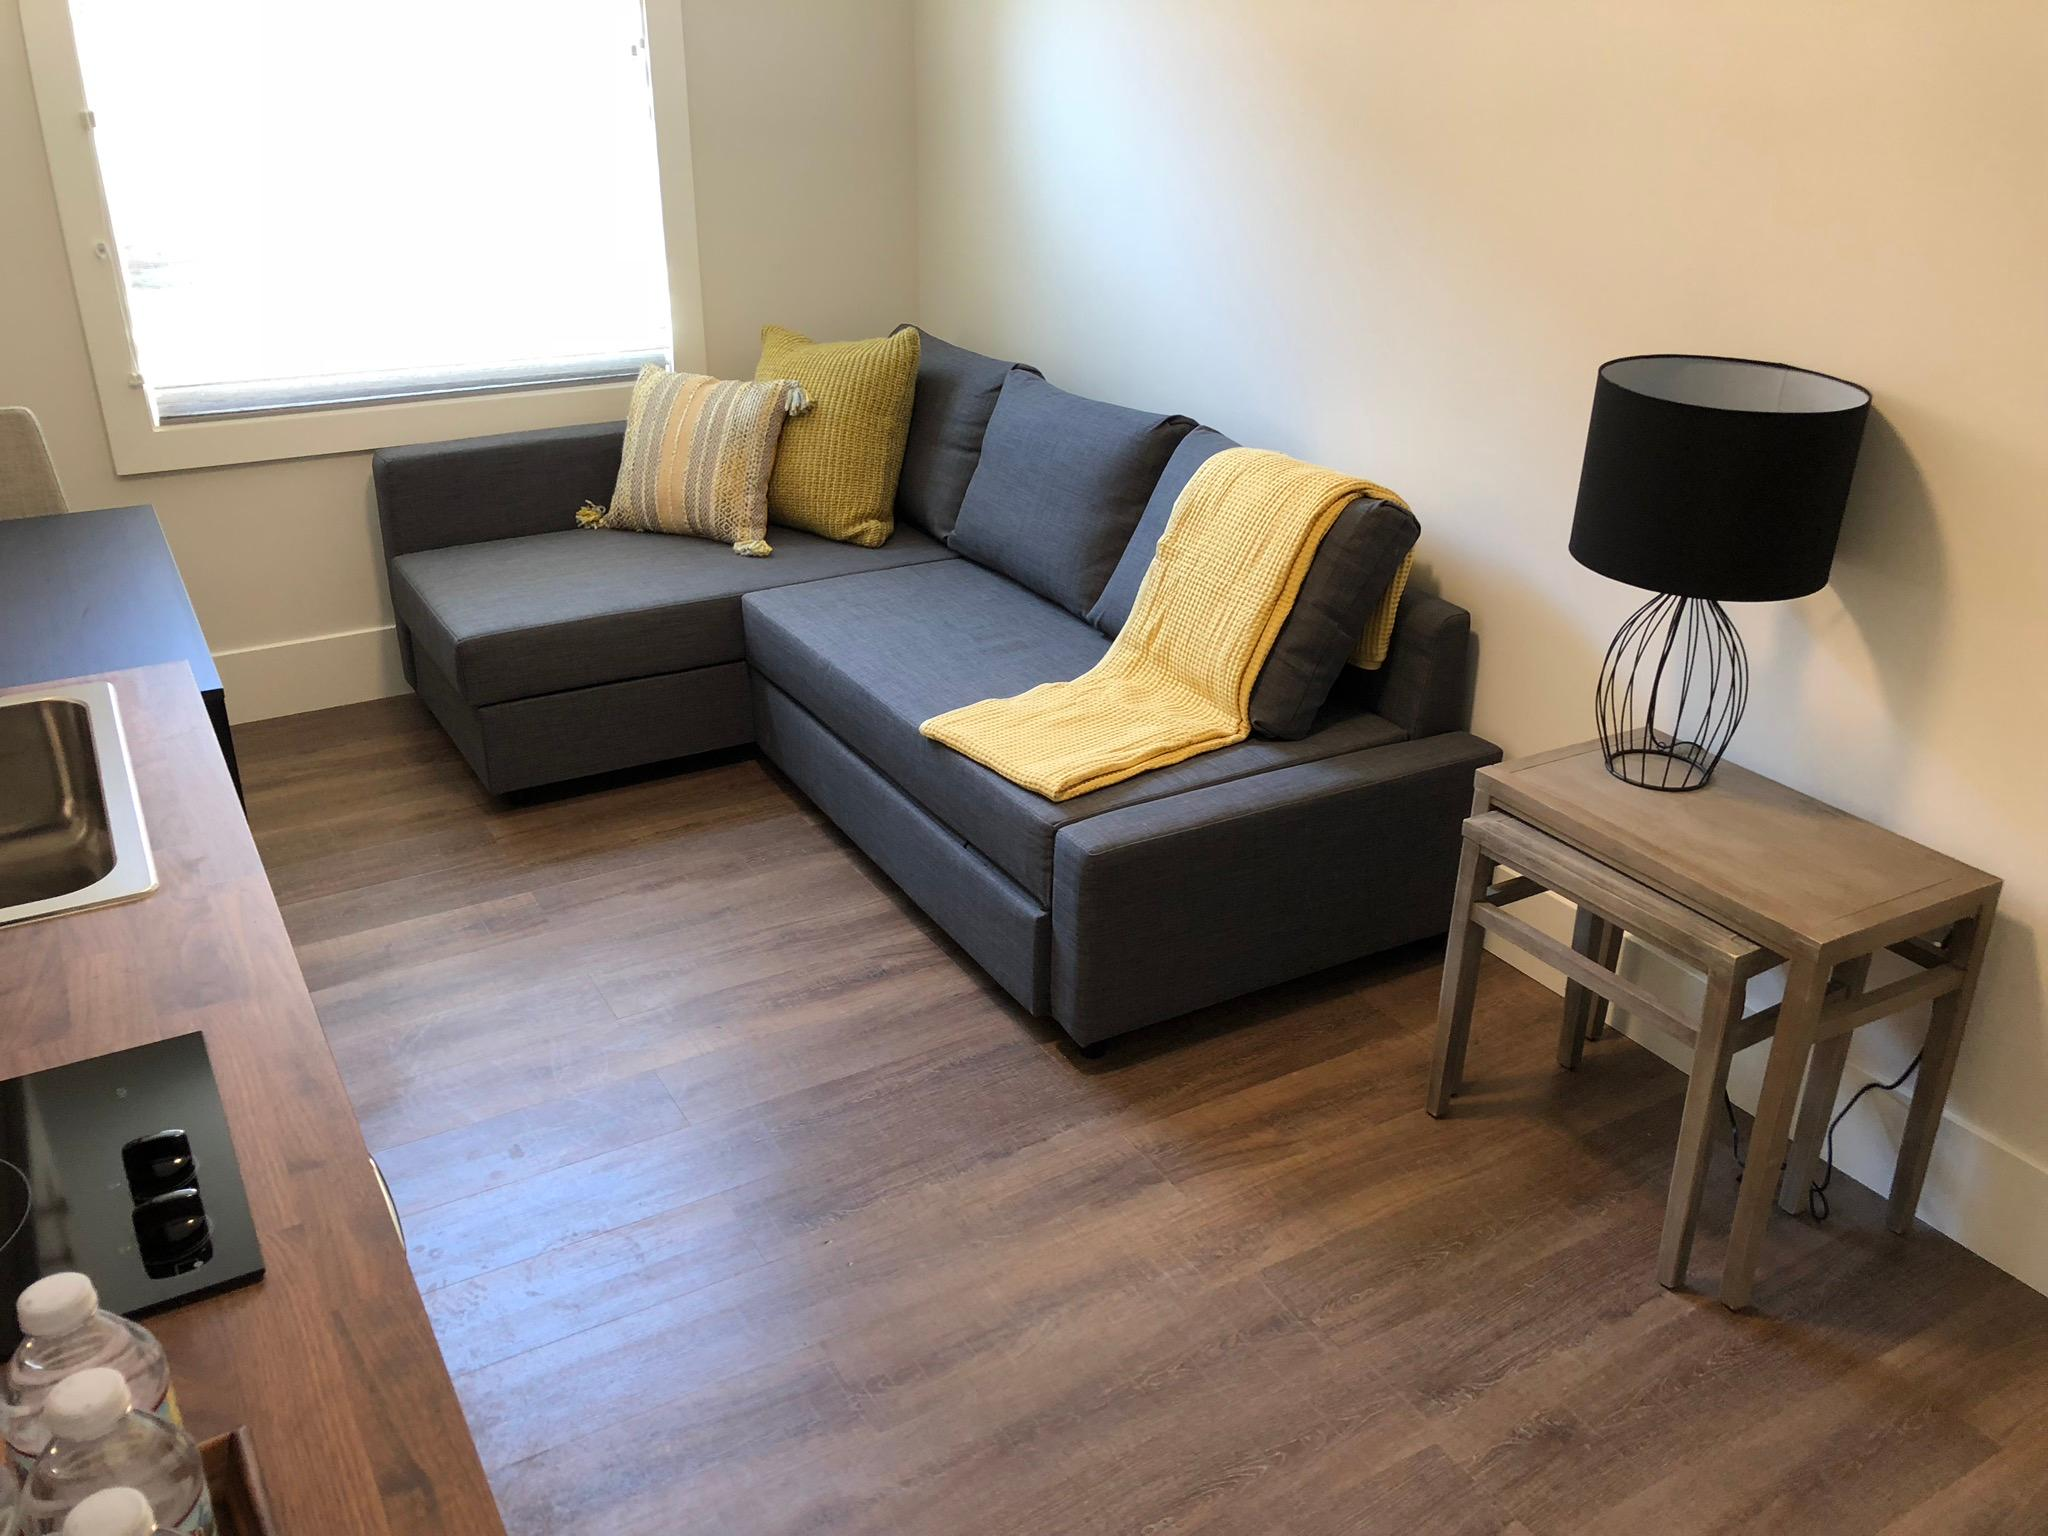 212-Trendy 1 Bedroom Apt in Downtown San Jose City